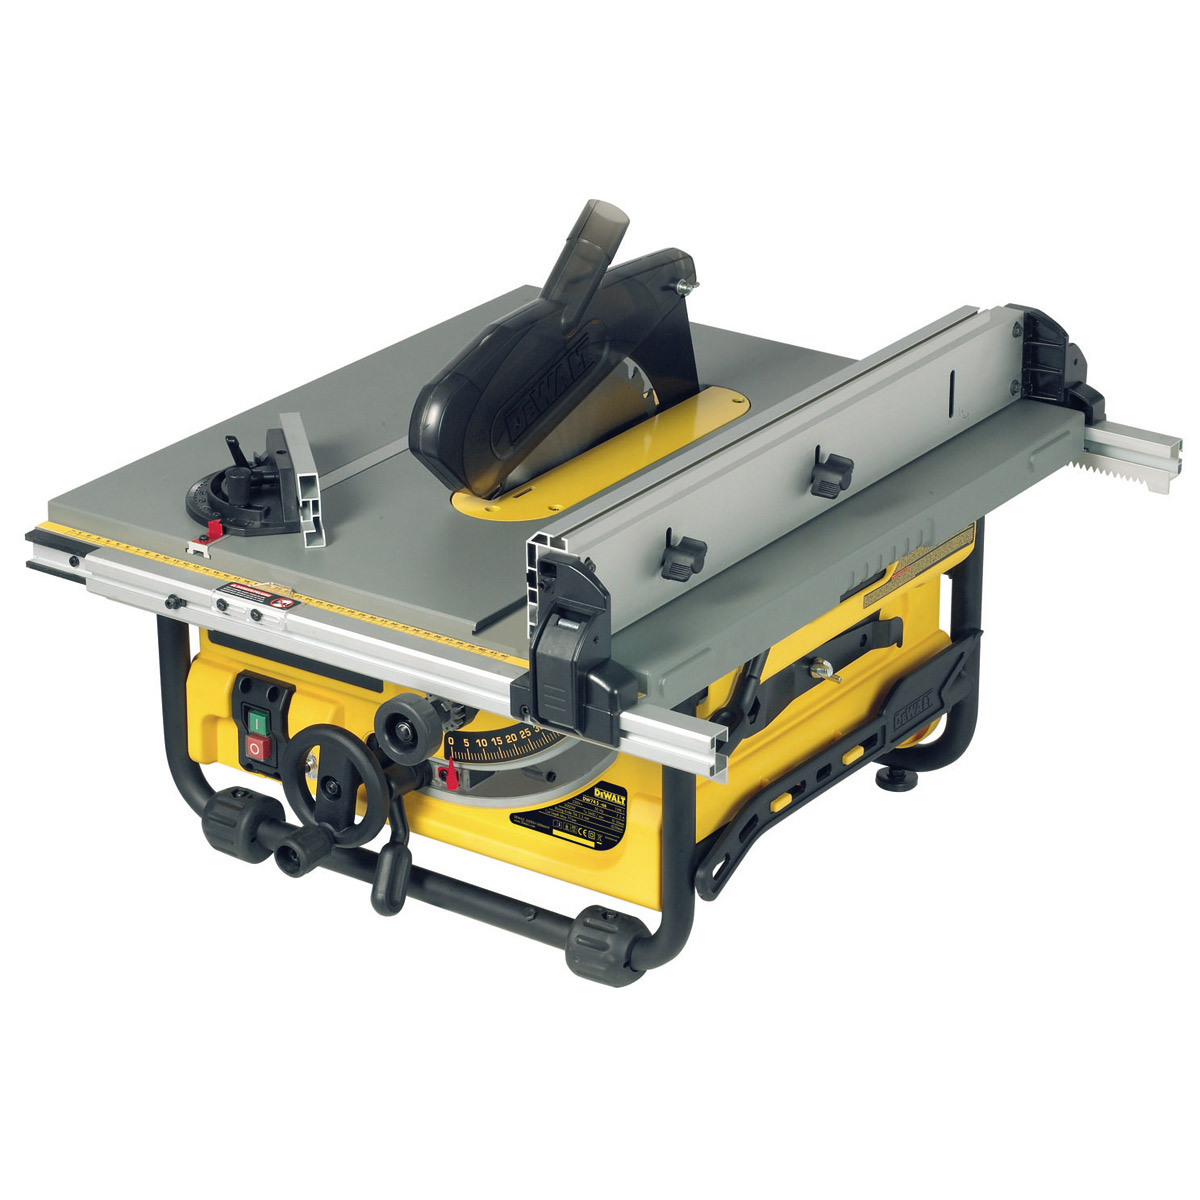 DEWALT DW745 250MM TABLE SAW 240V